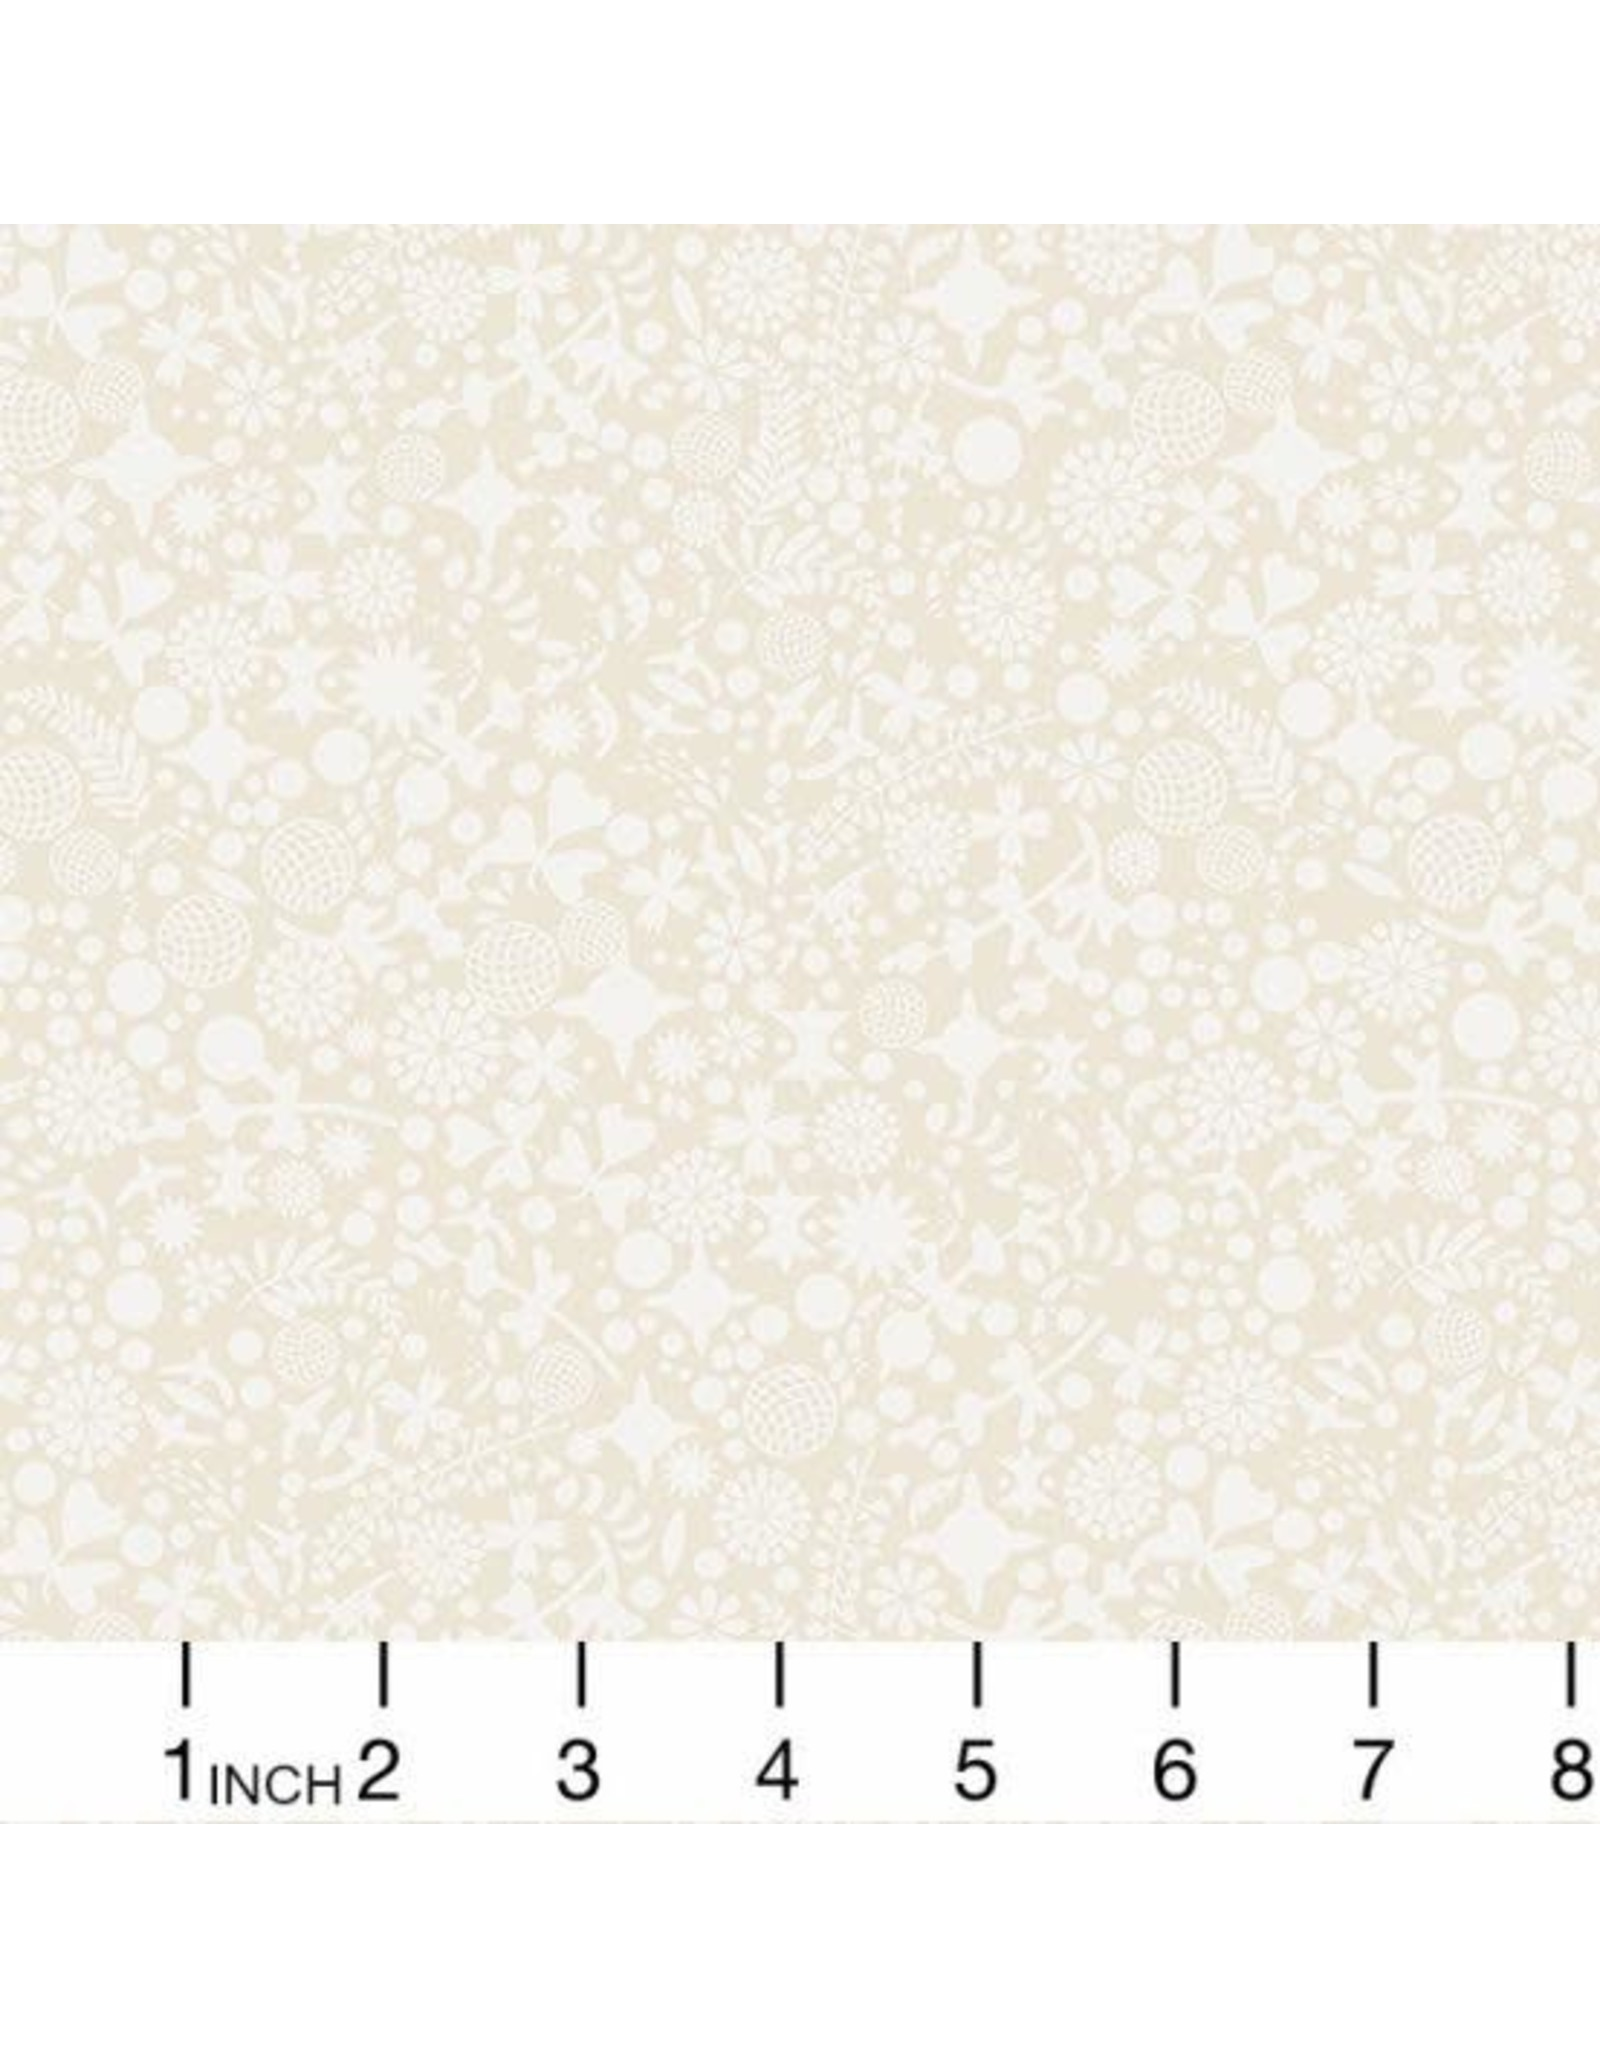 Alison Glass Art Theory, Endpaper in Day, Fabric Half-Yards A-9706L